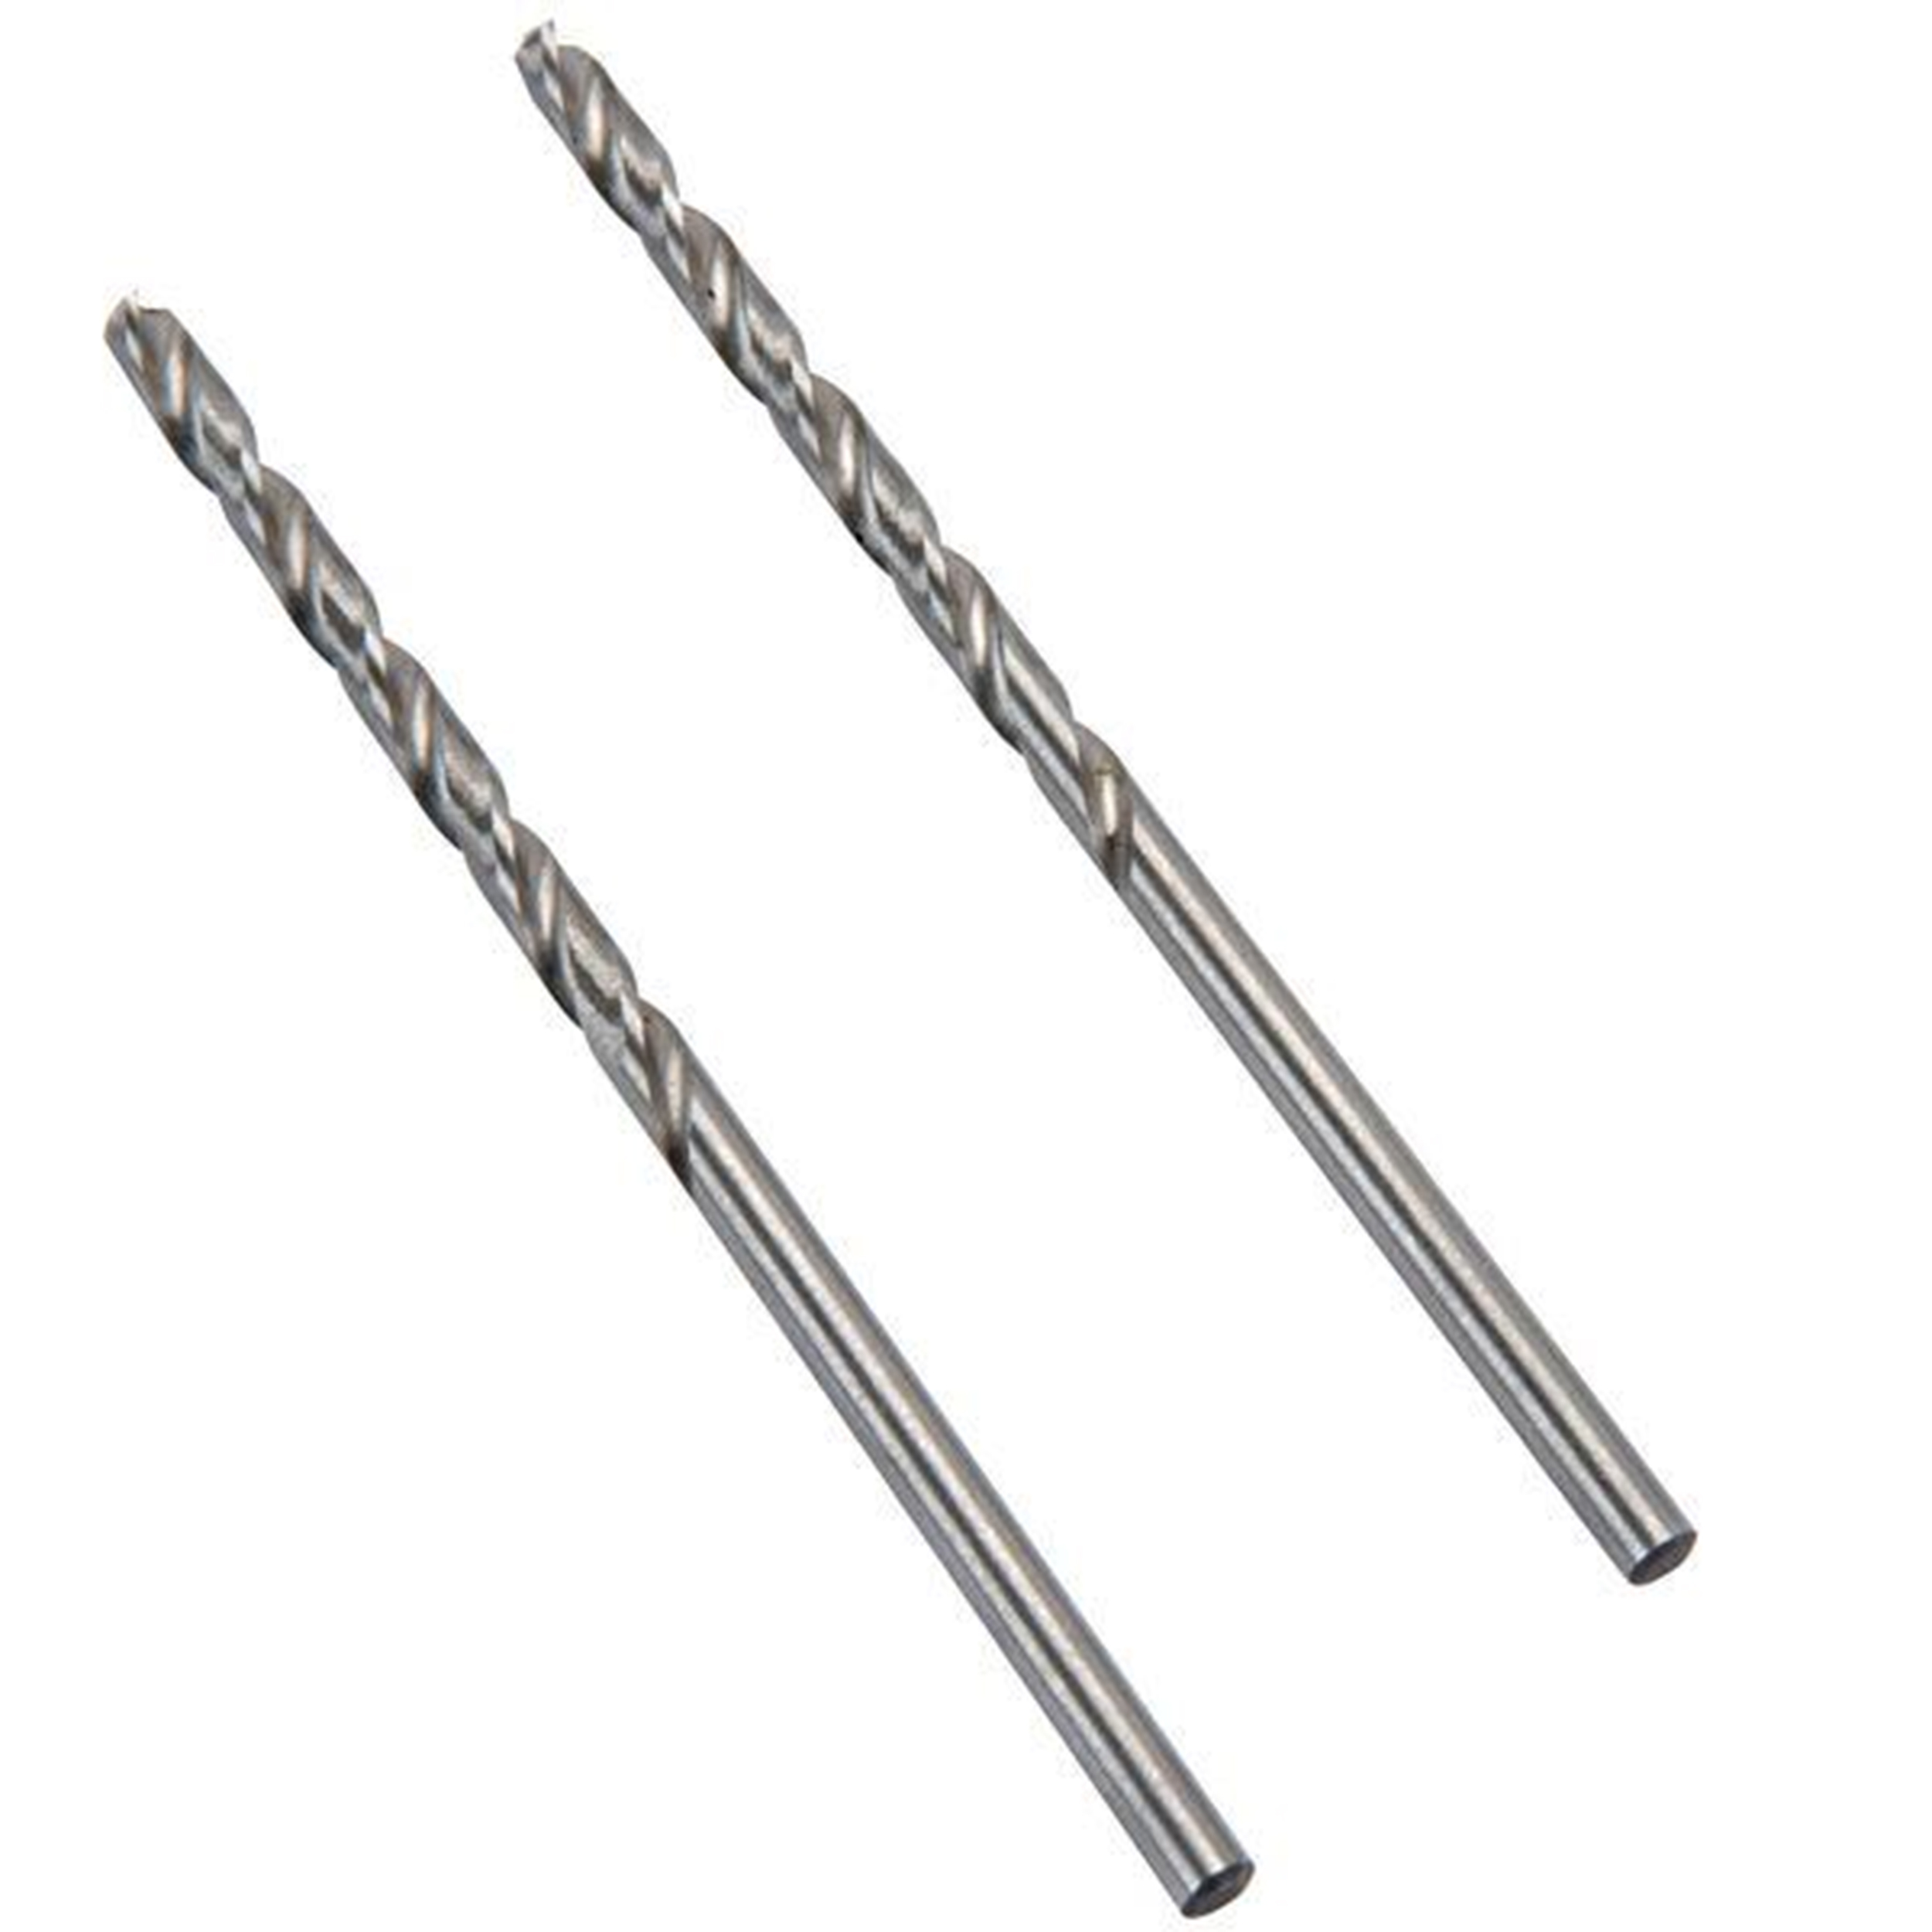 2-Piece 3/32? Replacement Drill Bits For Countersink